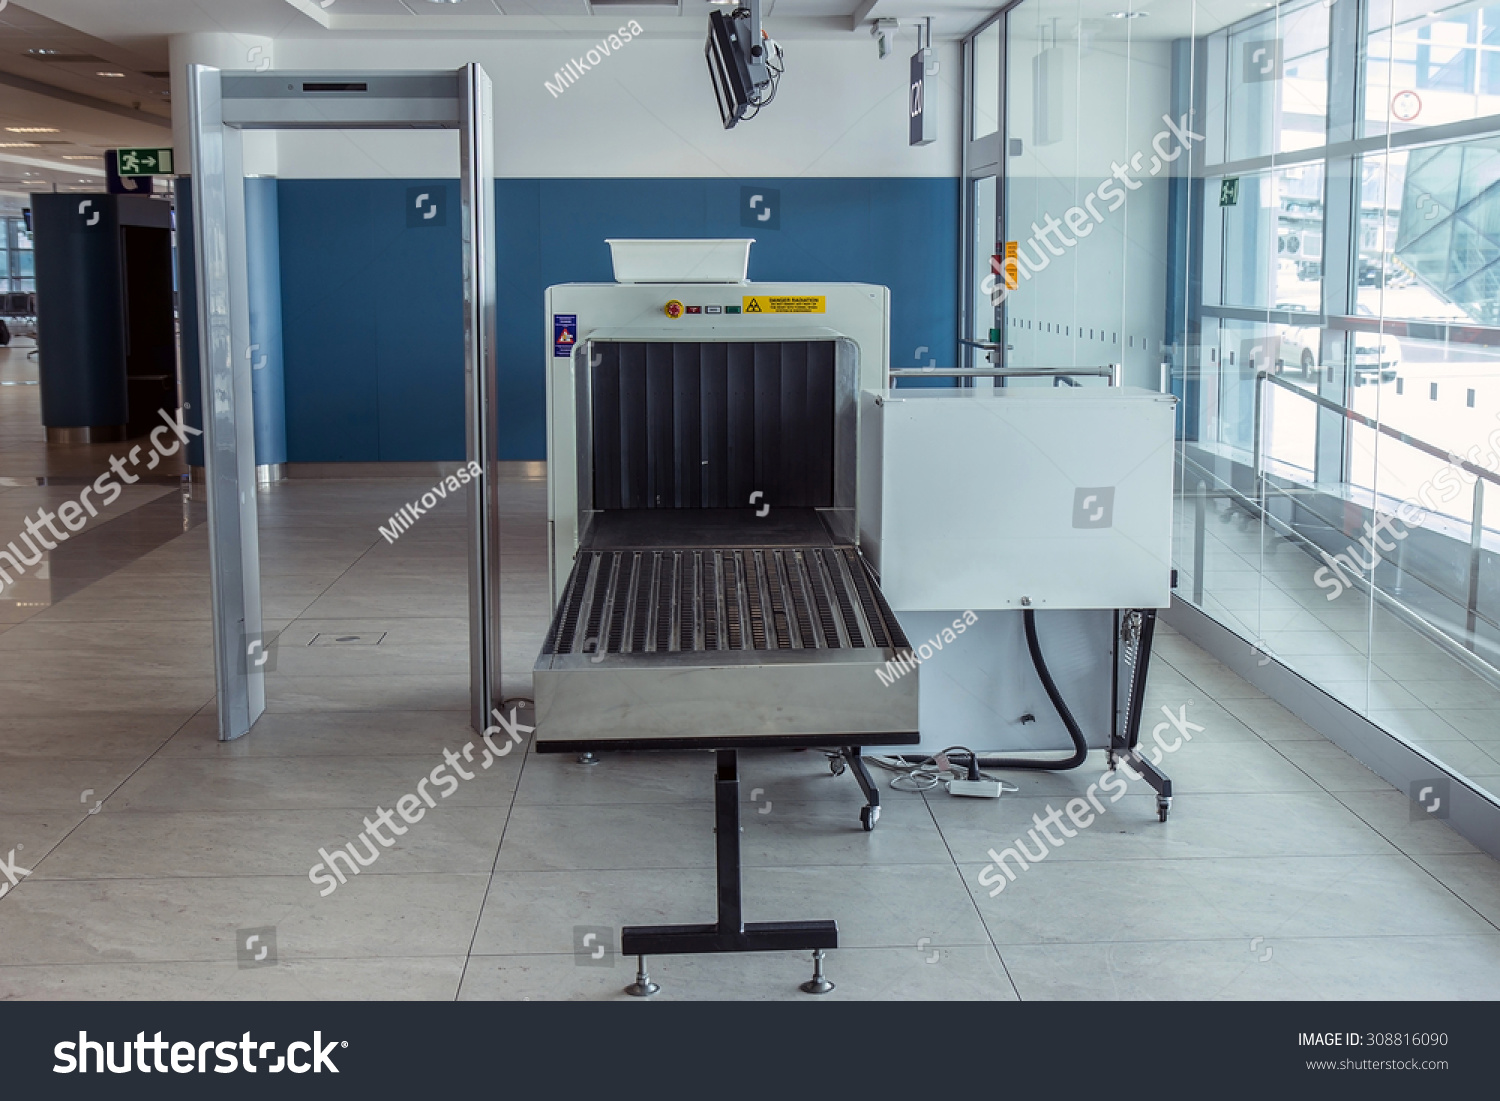 Royalty free airport security metal detector scan